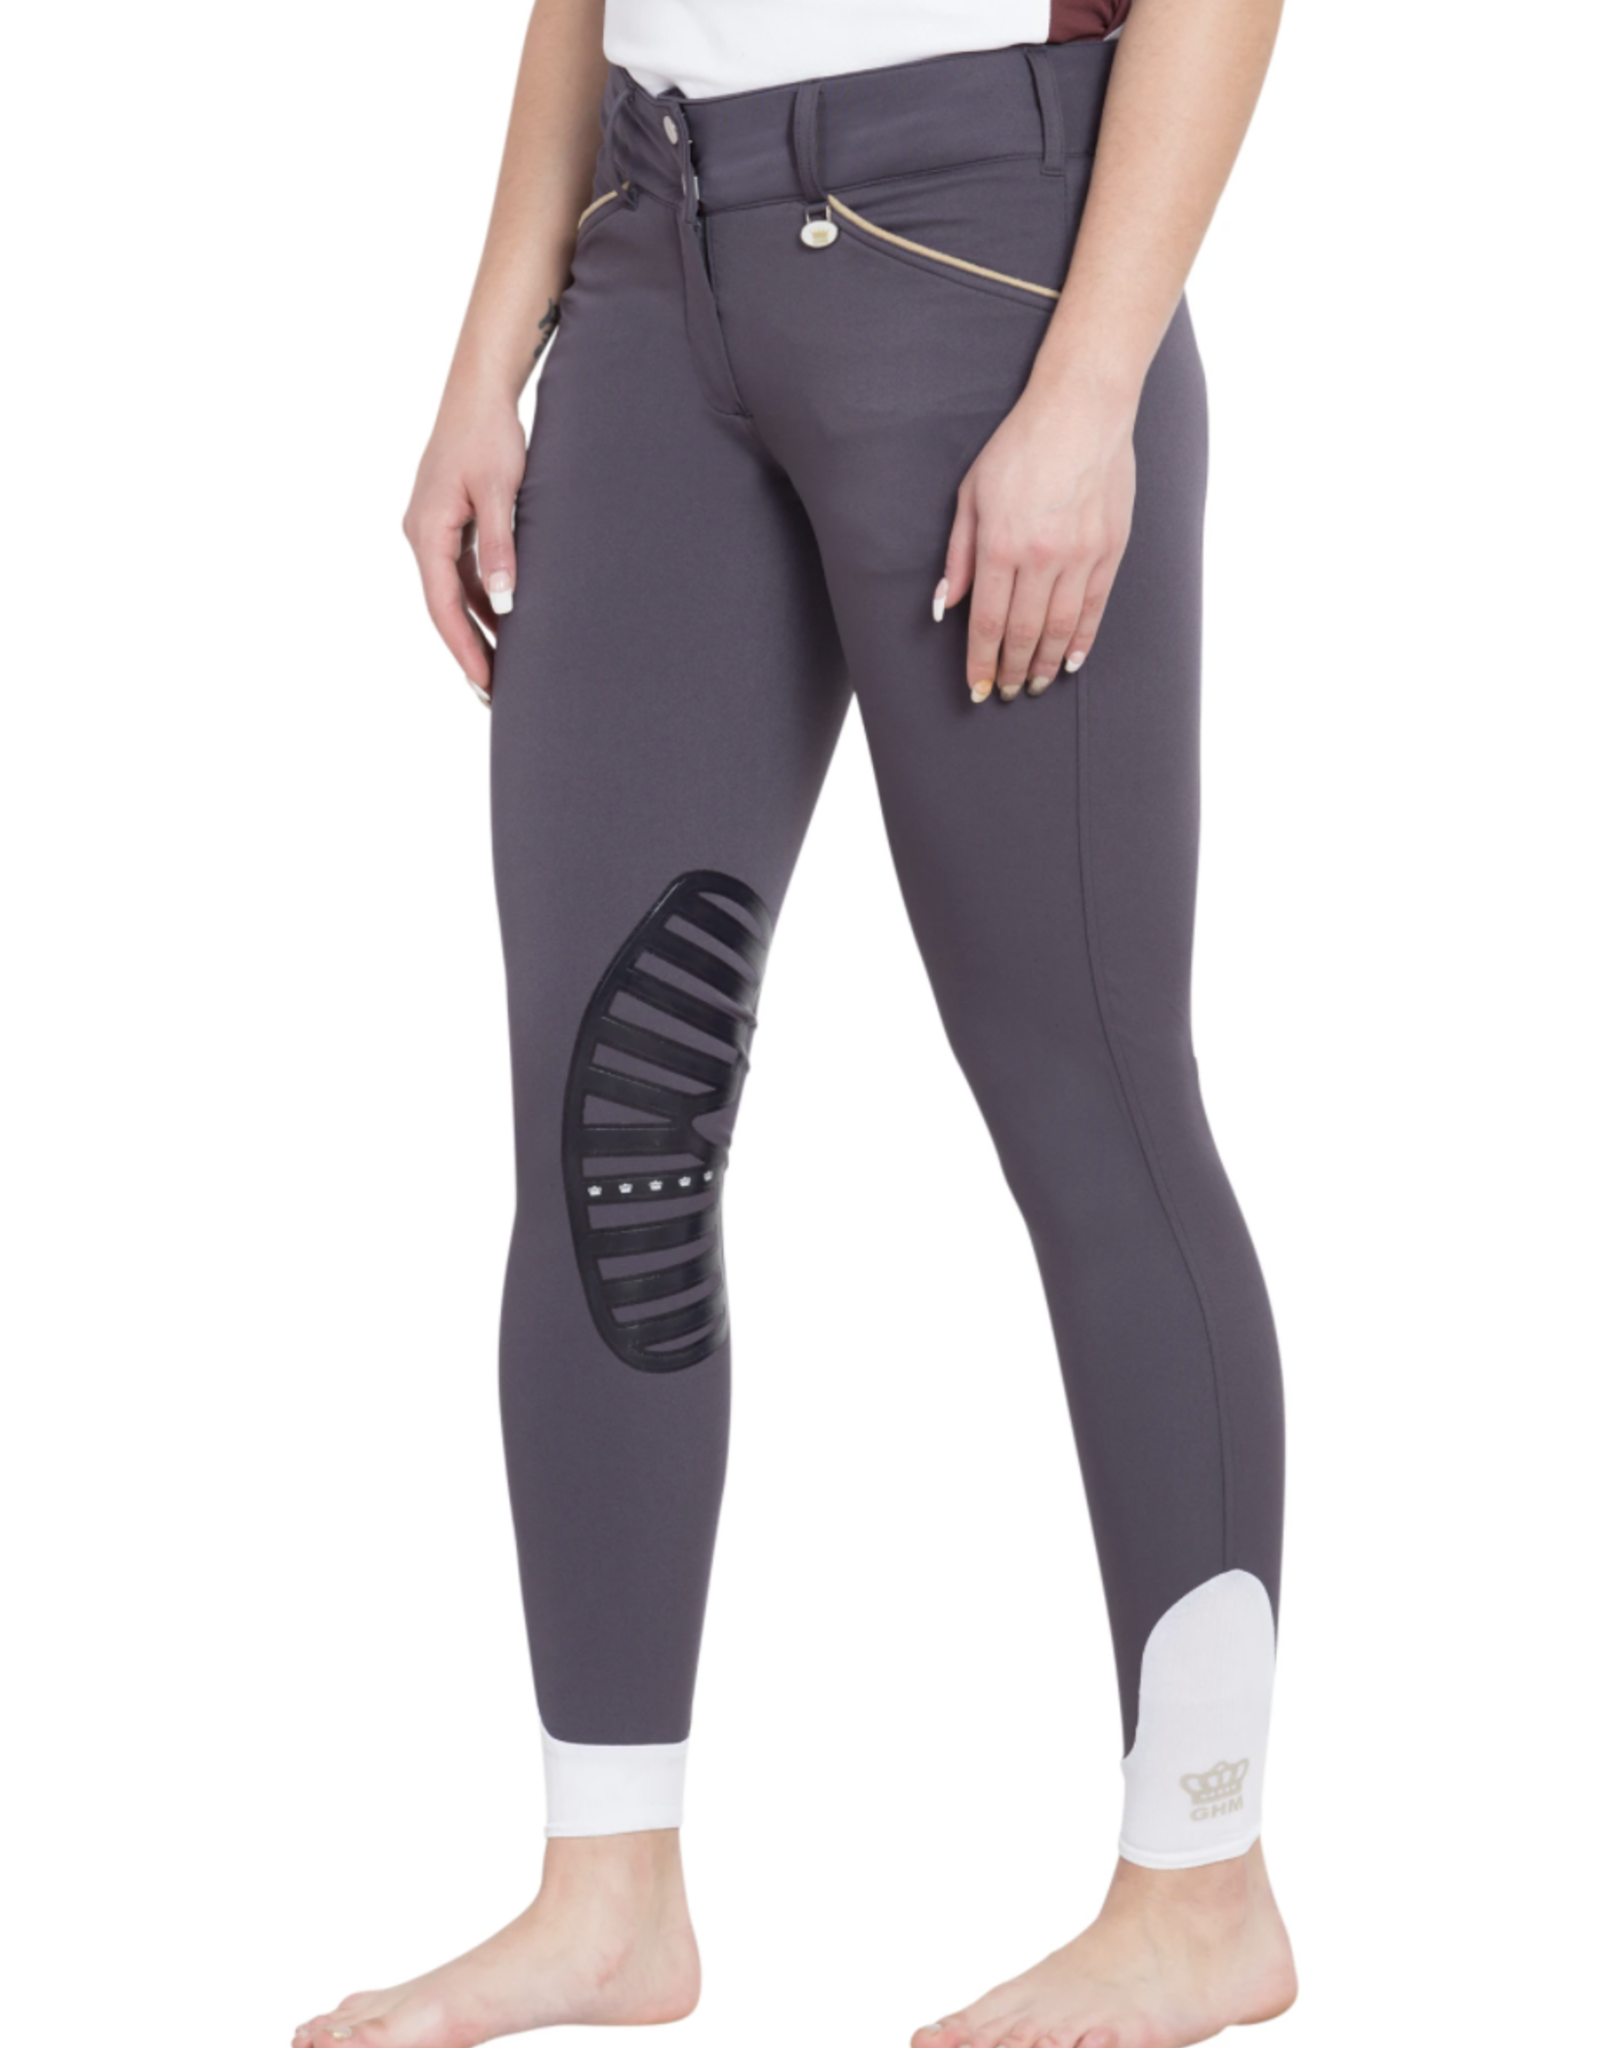 Equine Couture Ladies' Add Back Silicone Knee Patch Breeches